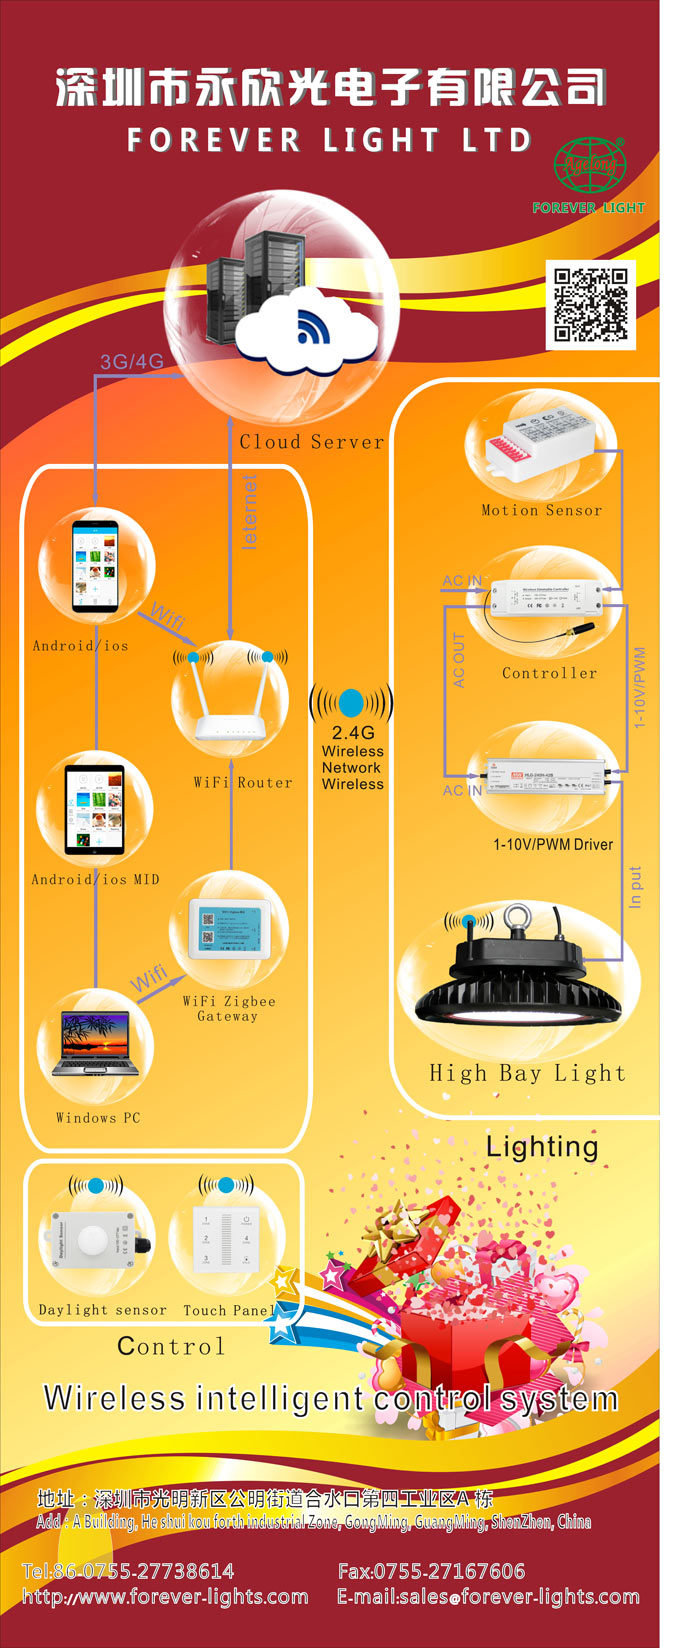 zigbee-high-bay-light